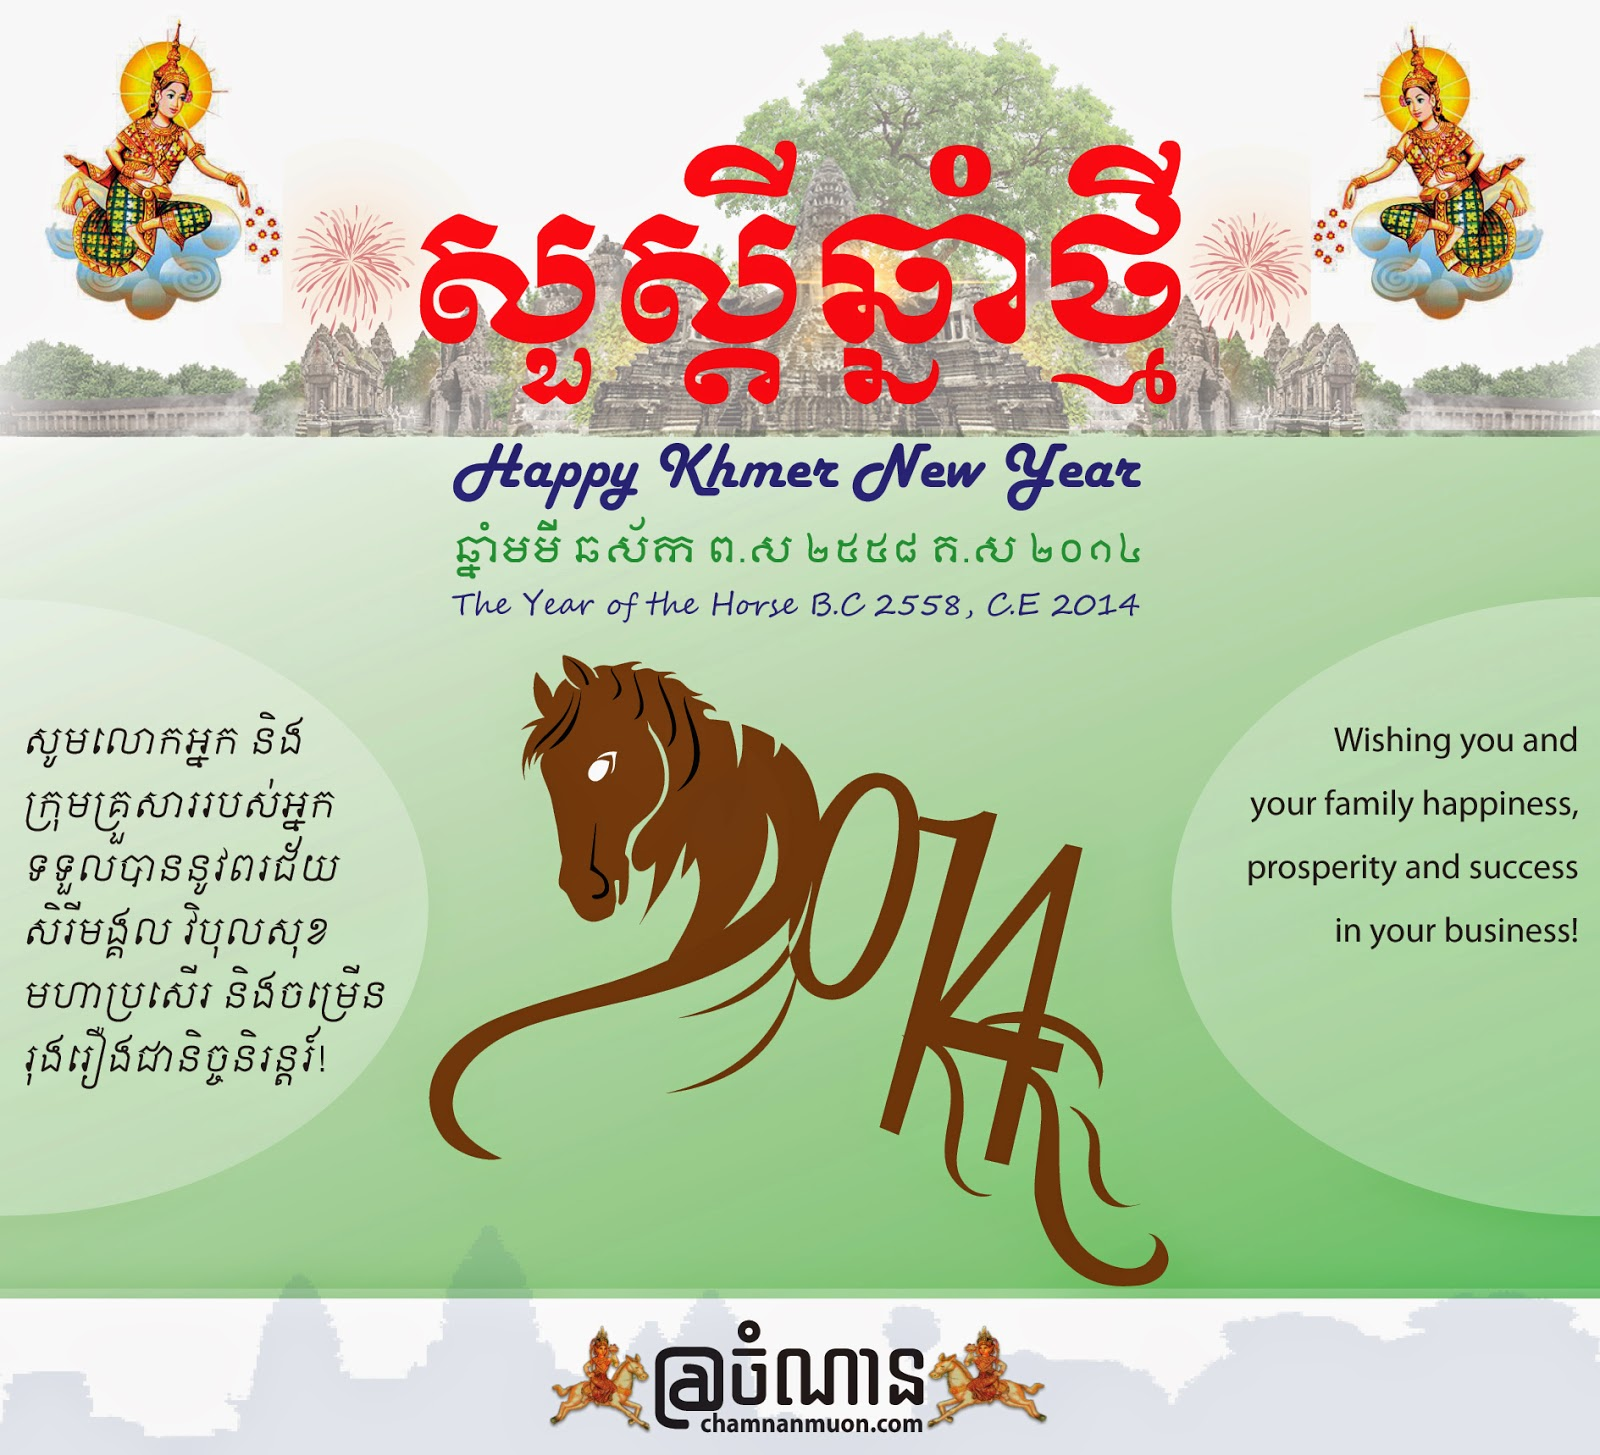 Khmer New Year Card 2014